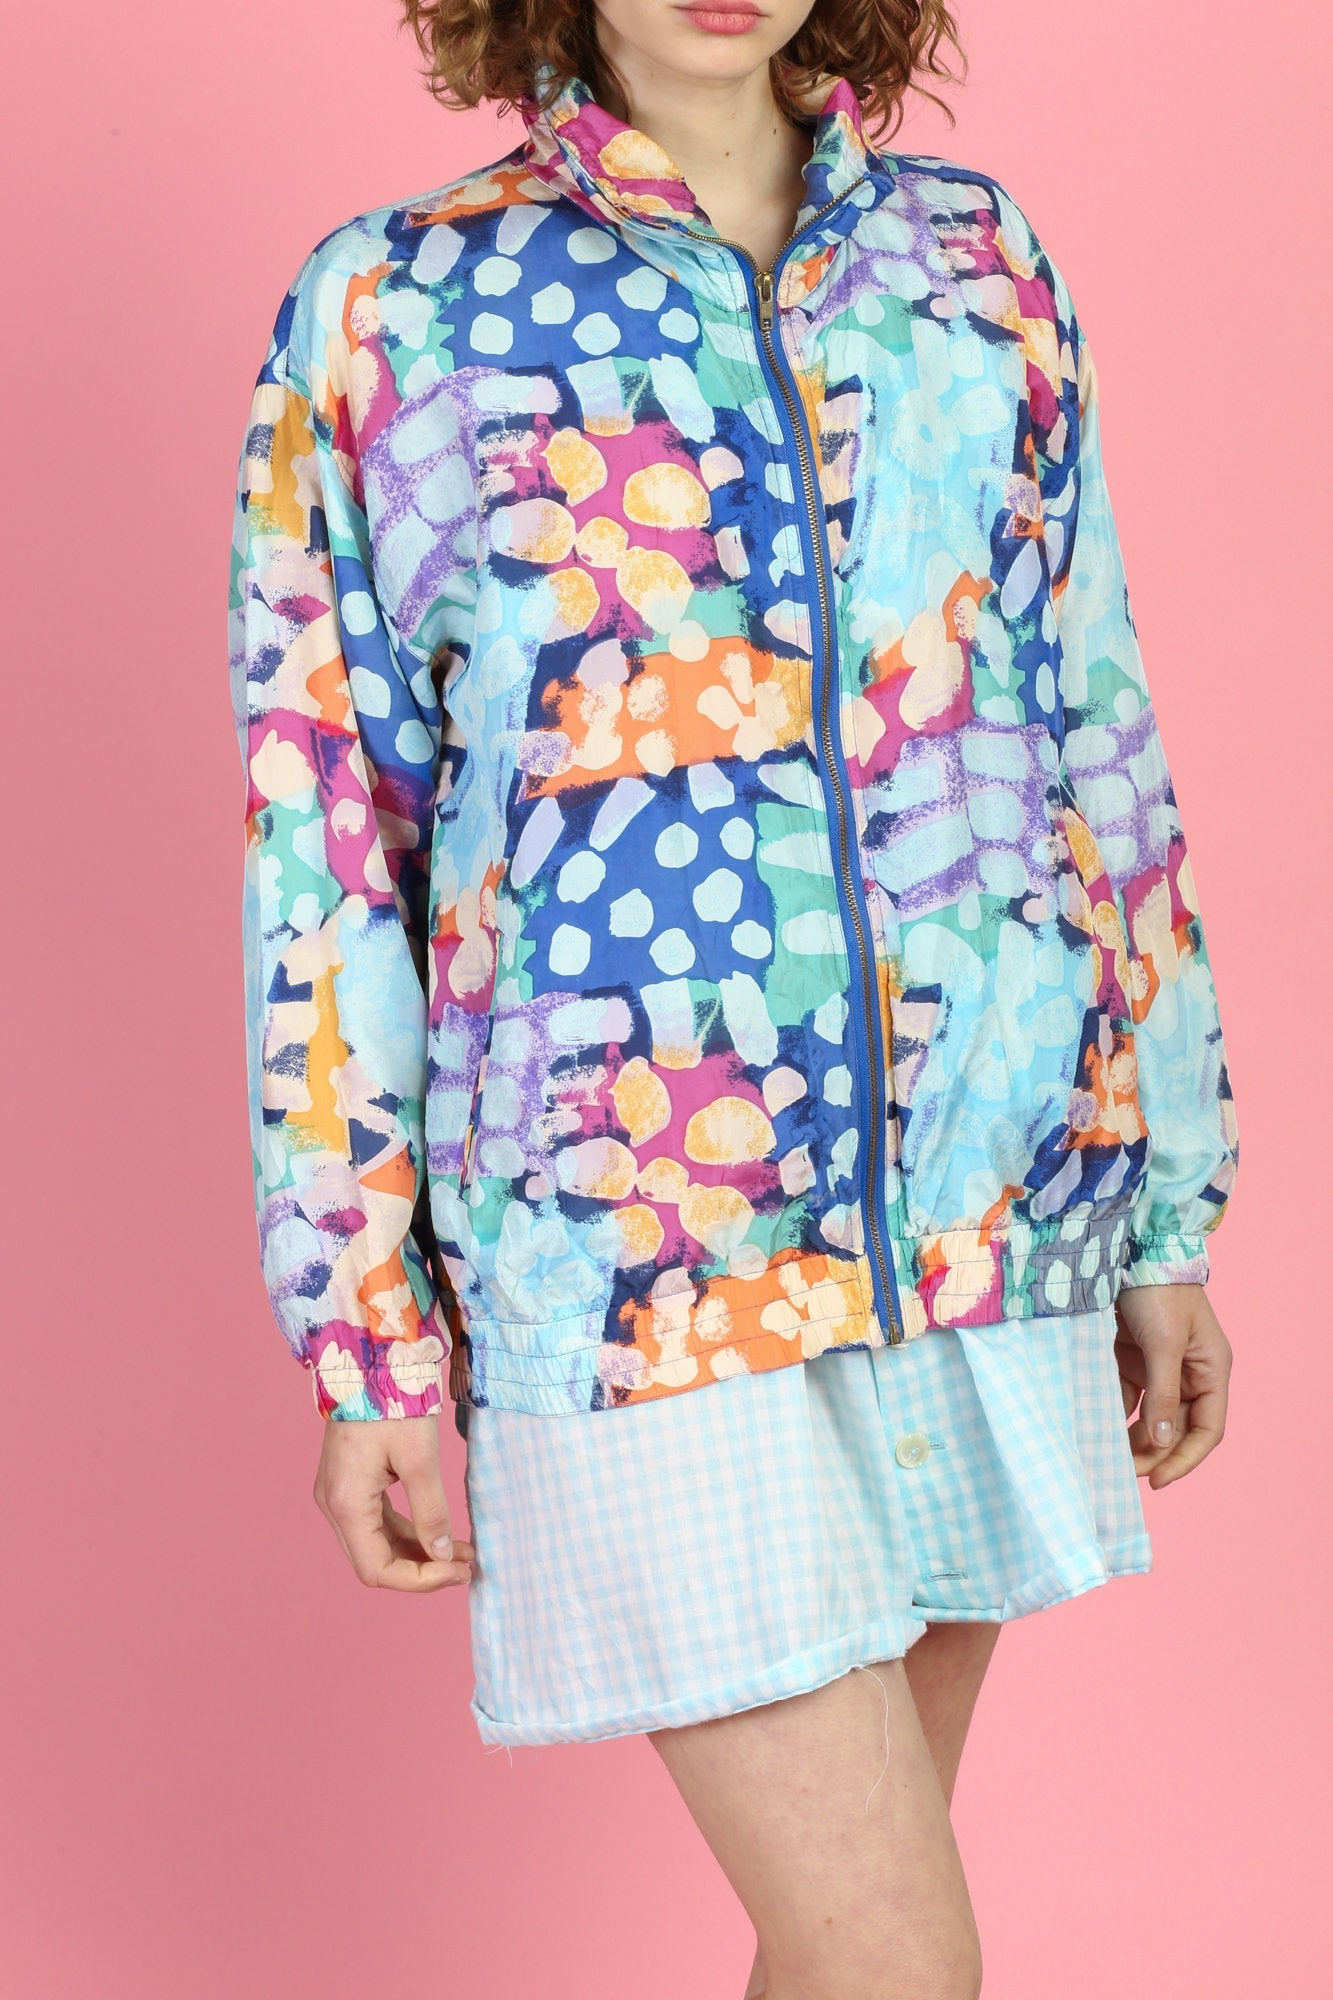 90s Colorful Silk Windbreaker - Medium